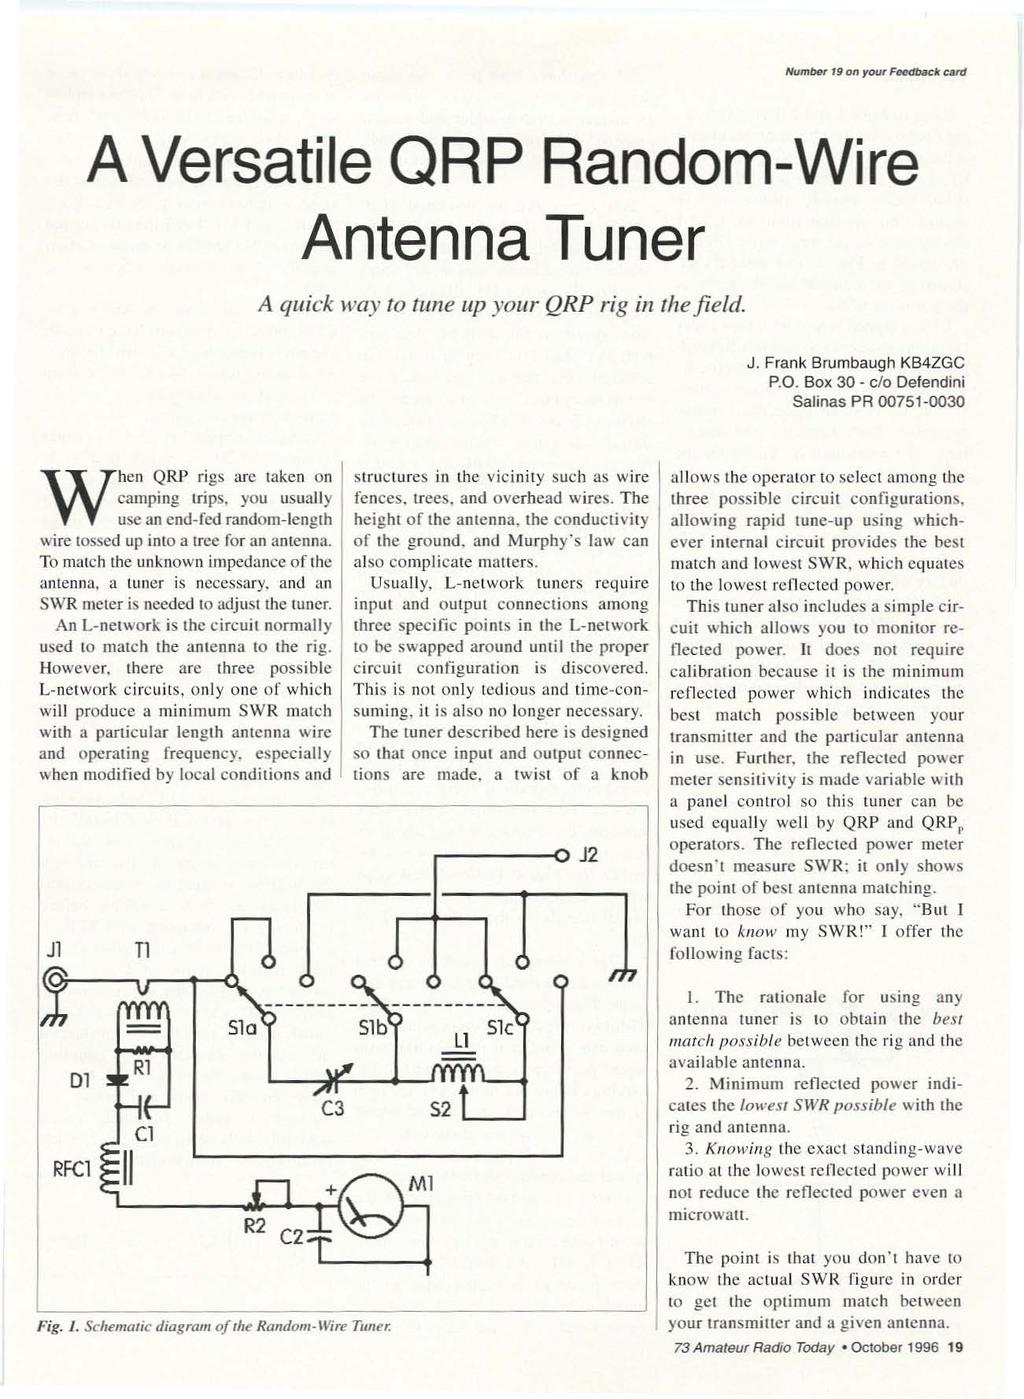 Qrp Low Power Fun Including Ham Radio October 1996 Issue 433 10113 Painless Fuse Box Iwmbe1 9 Onour Fflfhjbat Tjlrd A Versatile